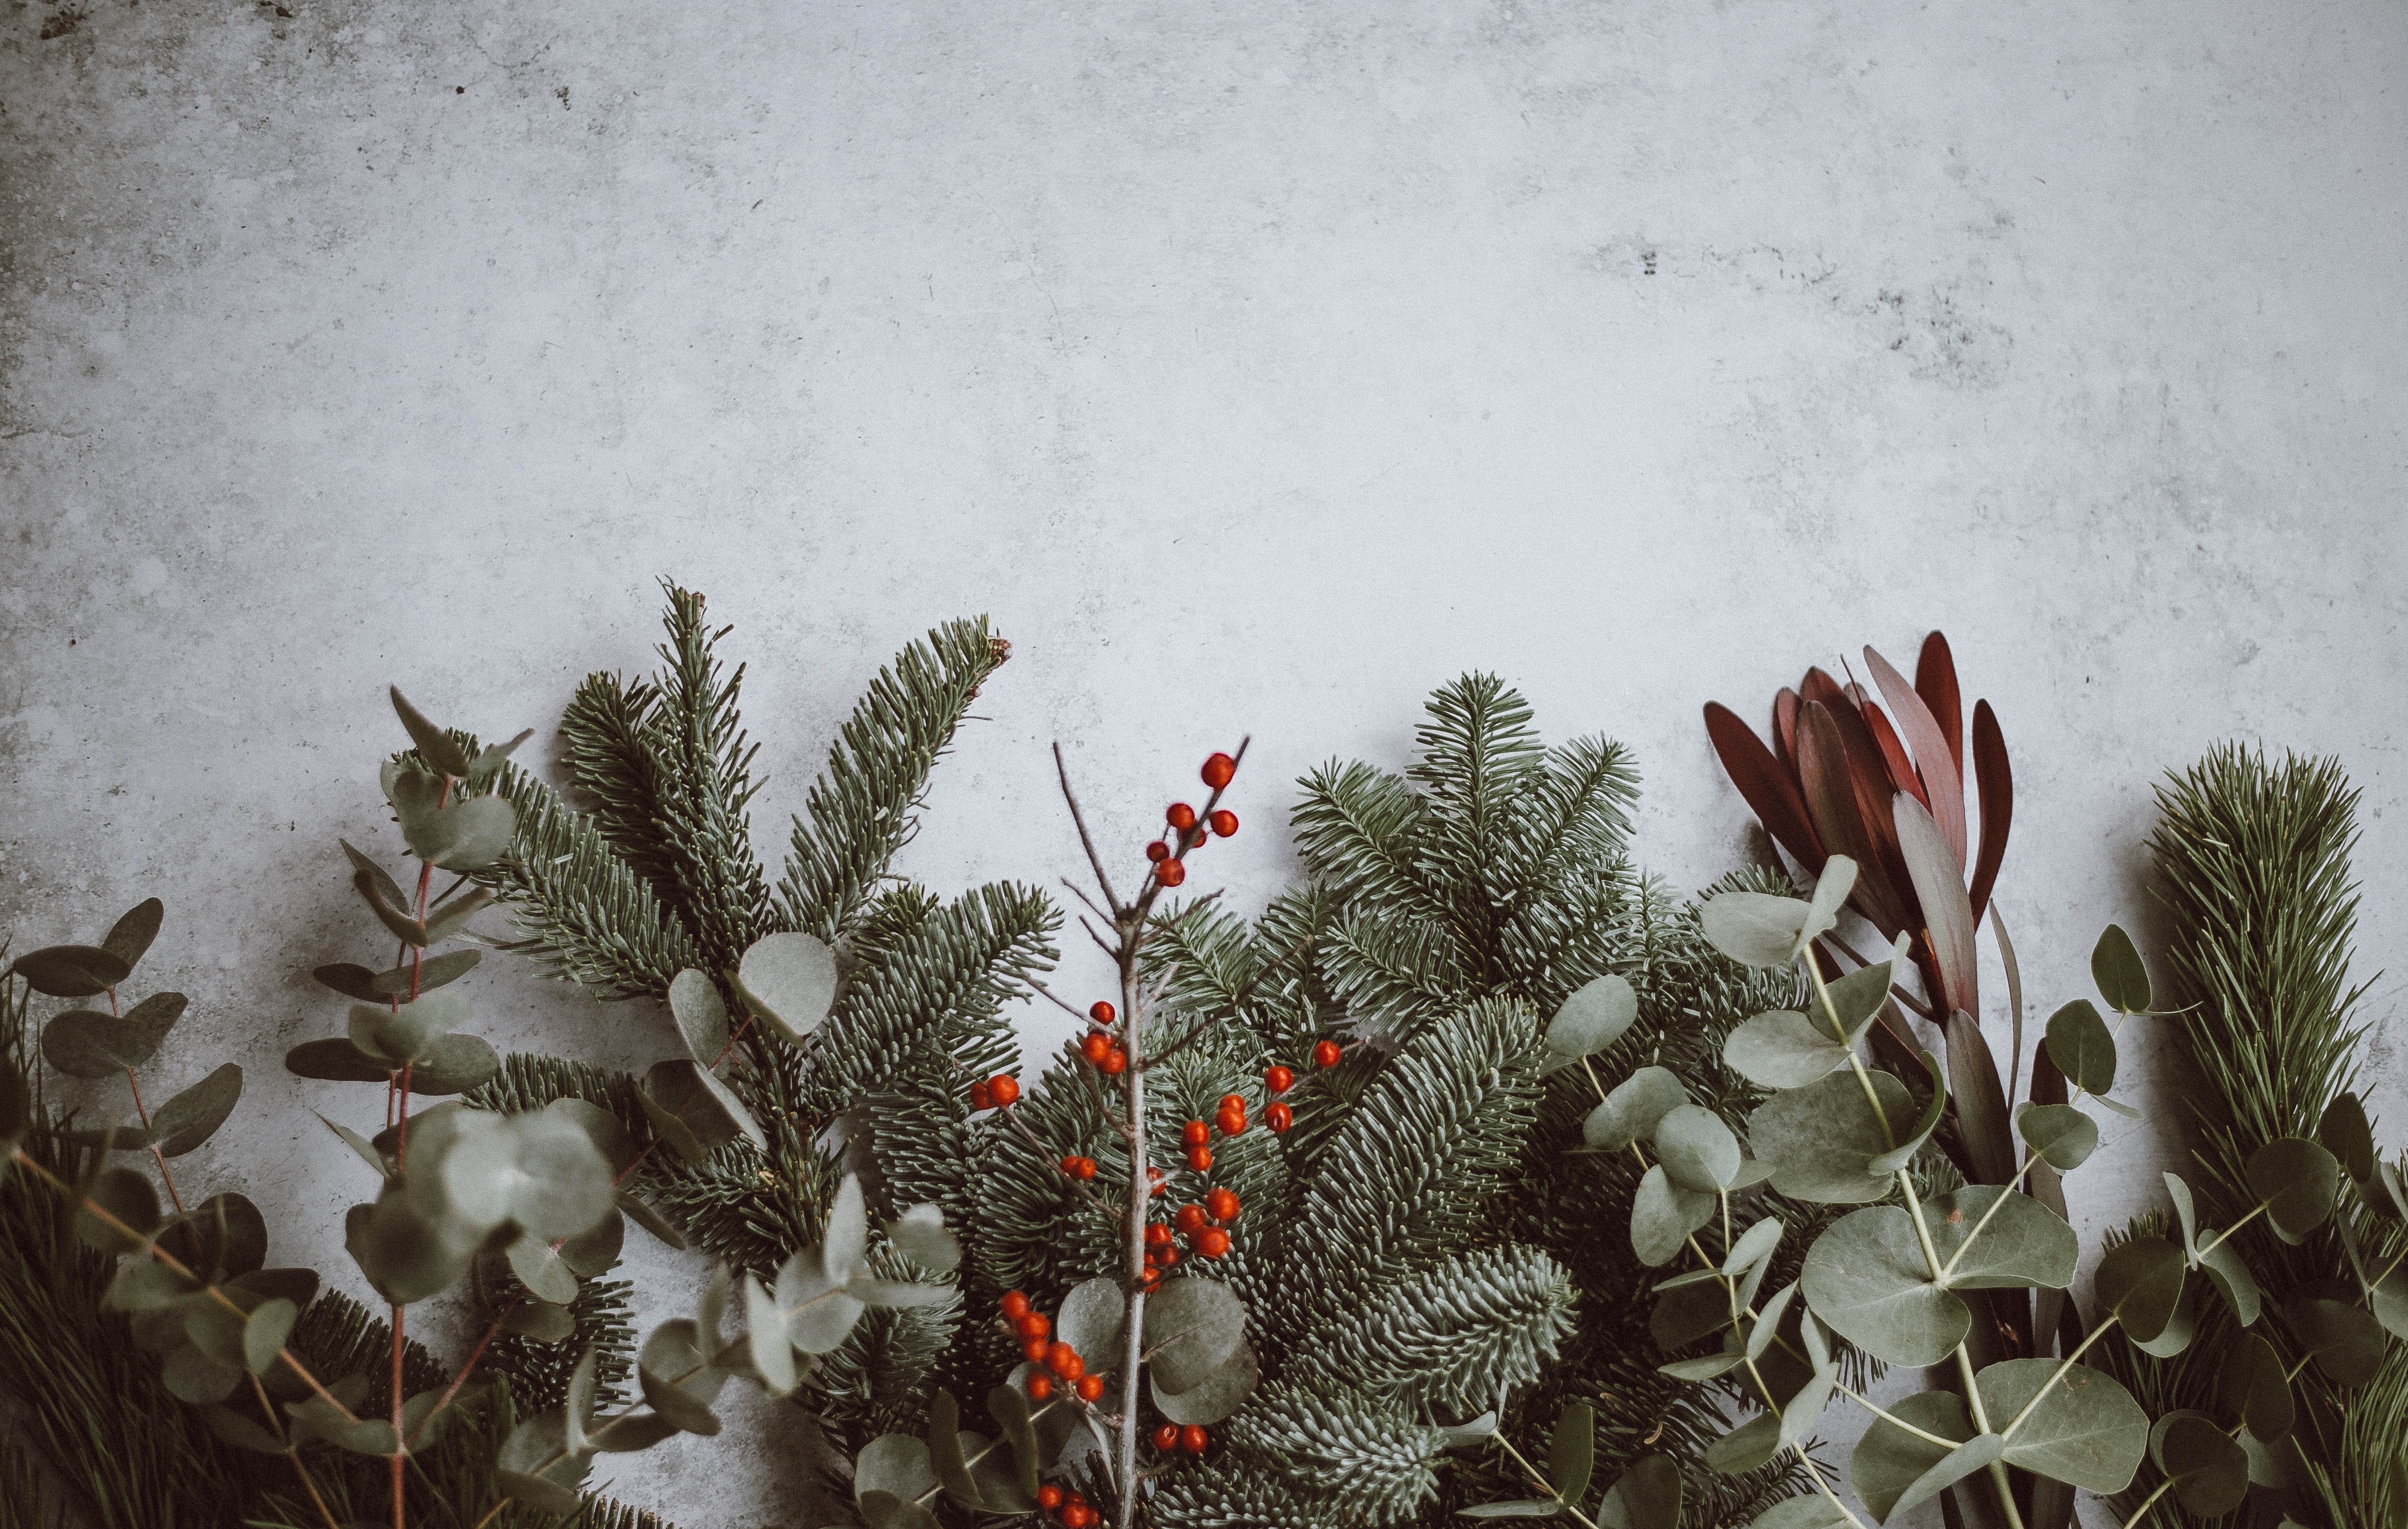 grieving over the holidays